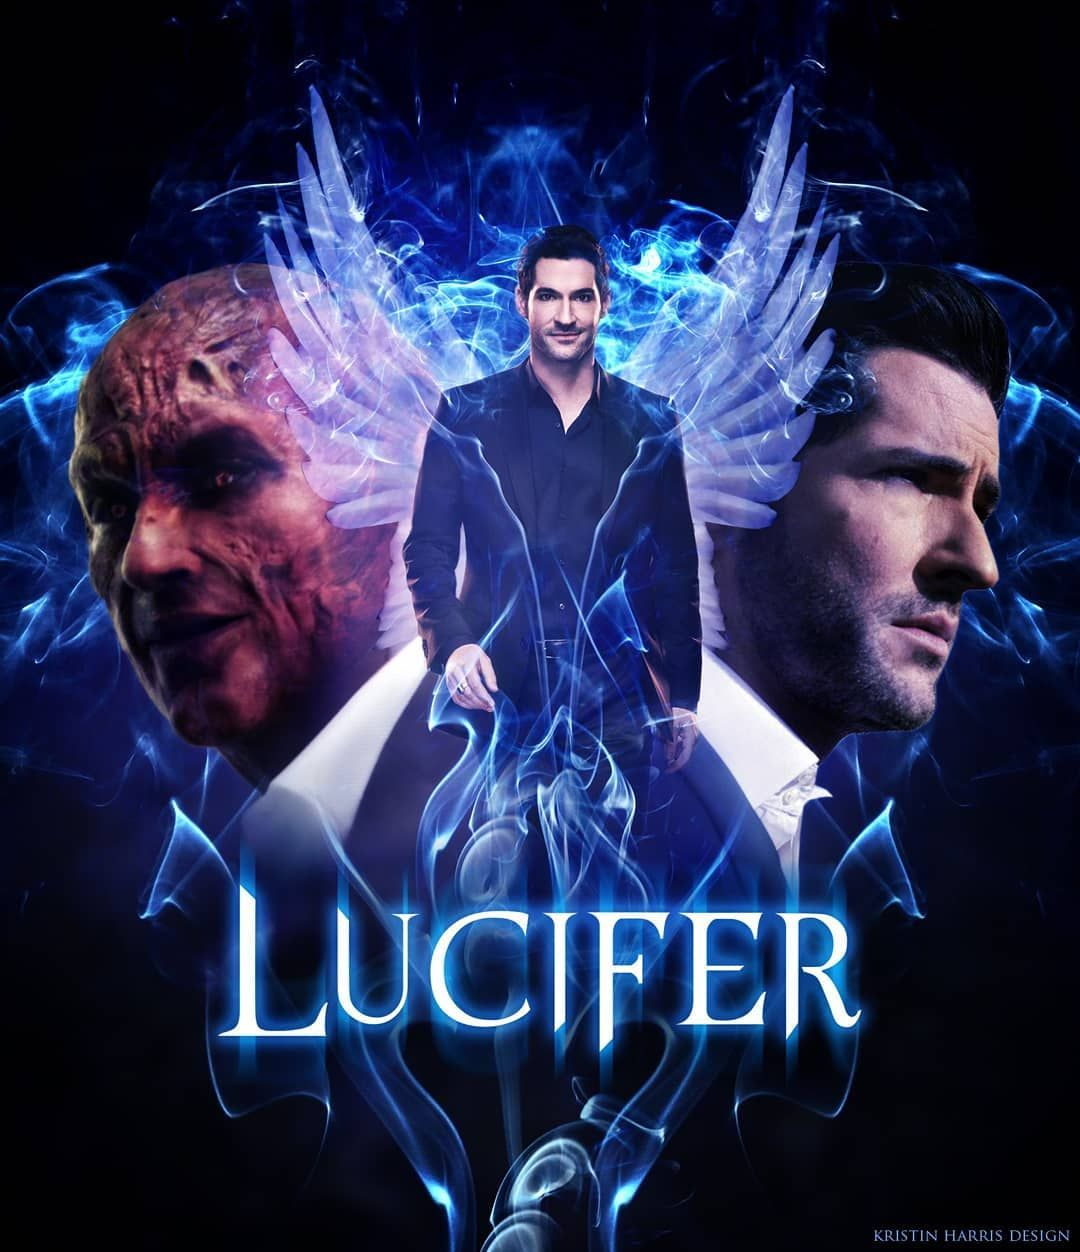 Lucifer Morningstar On Instagram Ansiosos Para A 4 Temporada Lucifans Crédito Kristin Harris Design Lucifer Morningstar Lucifer Tom Ellis Lucifer